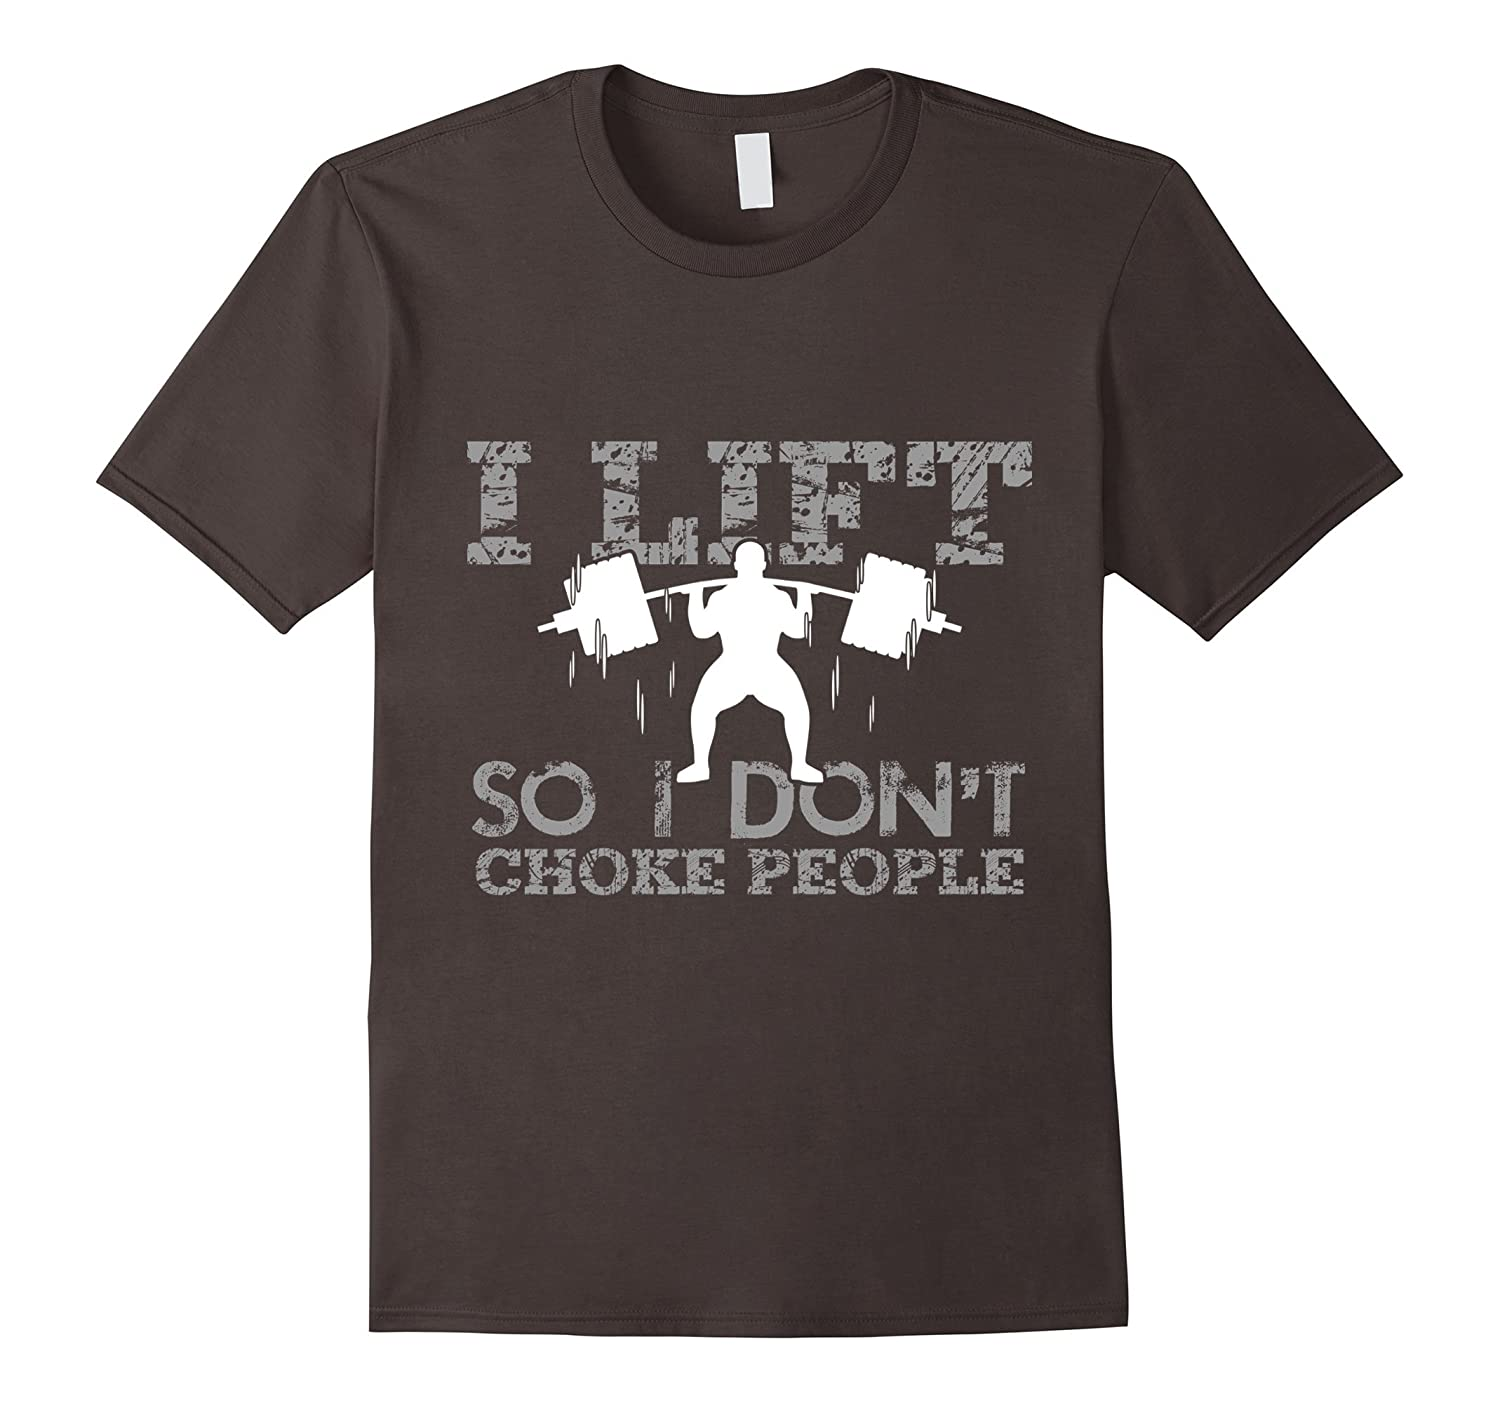 561b7e65 Powerlifting t shirts sayings I lift so I don't choke people-RT ...